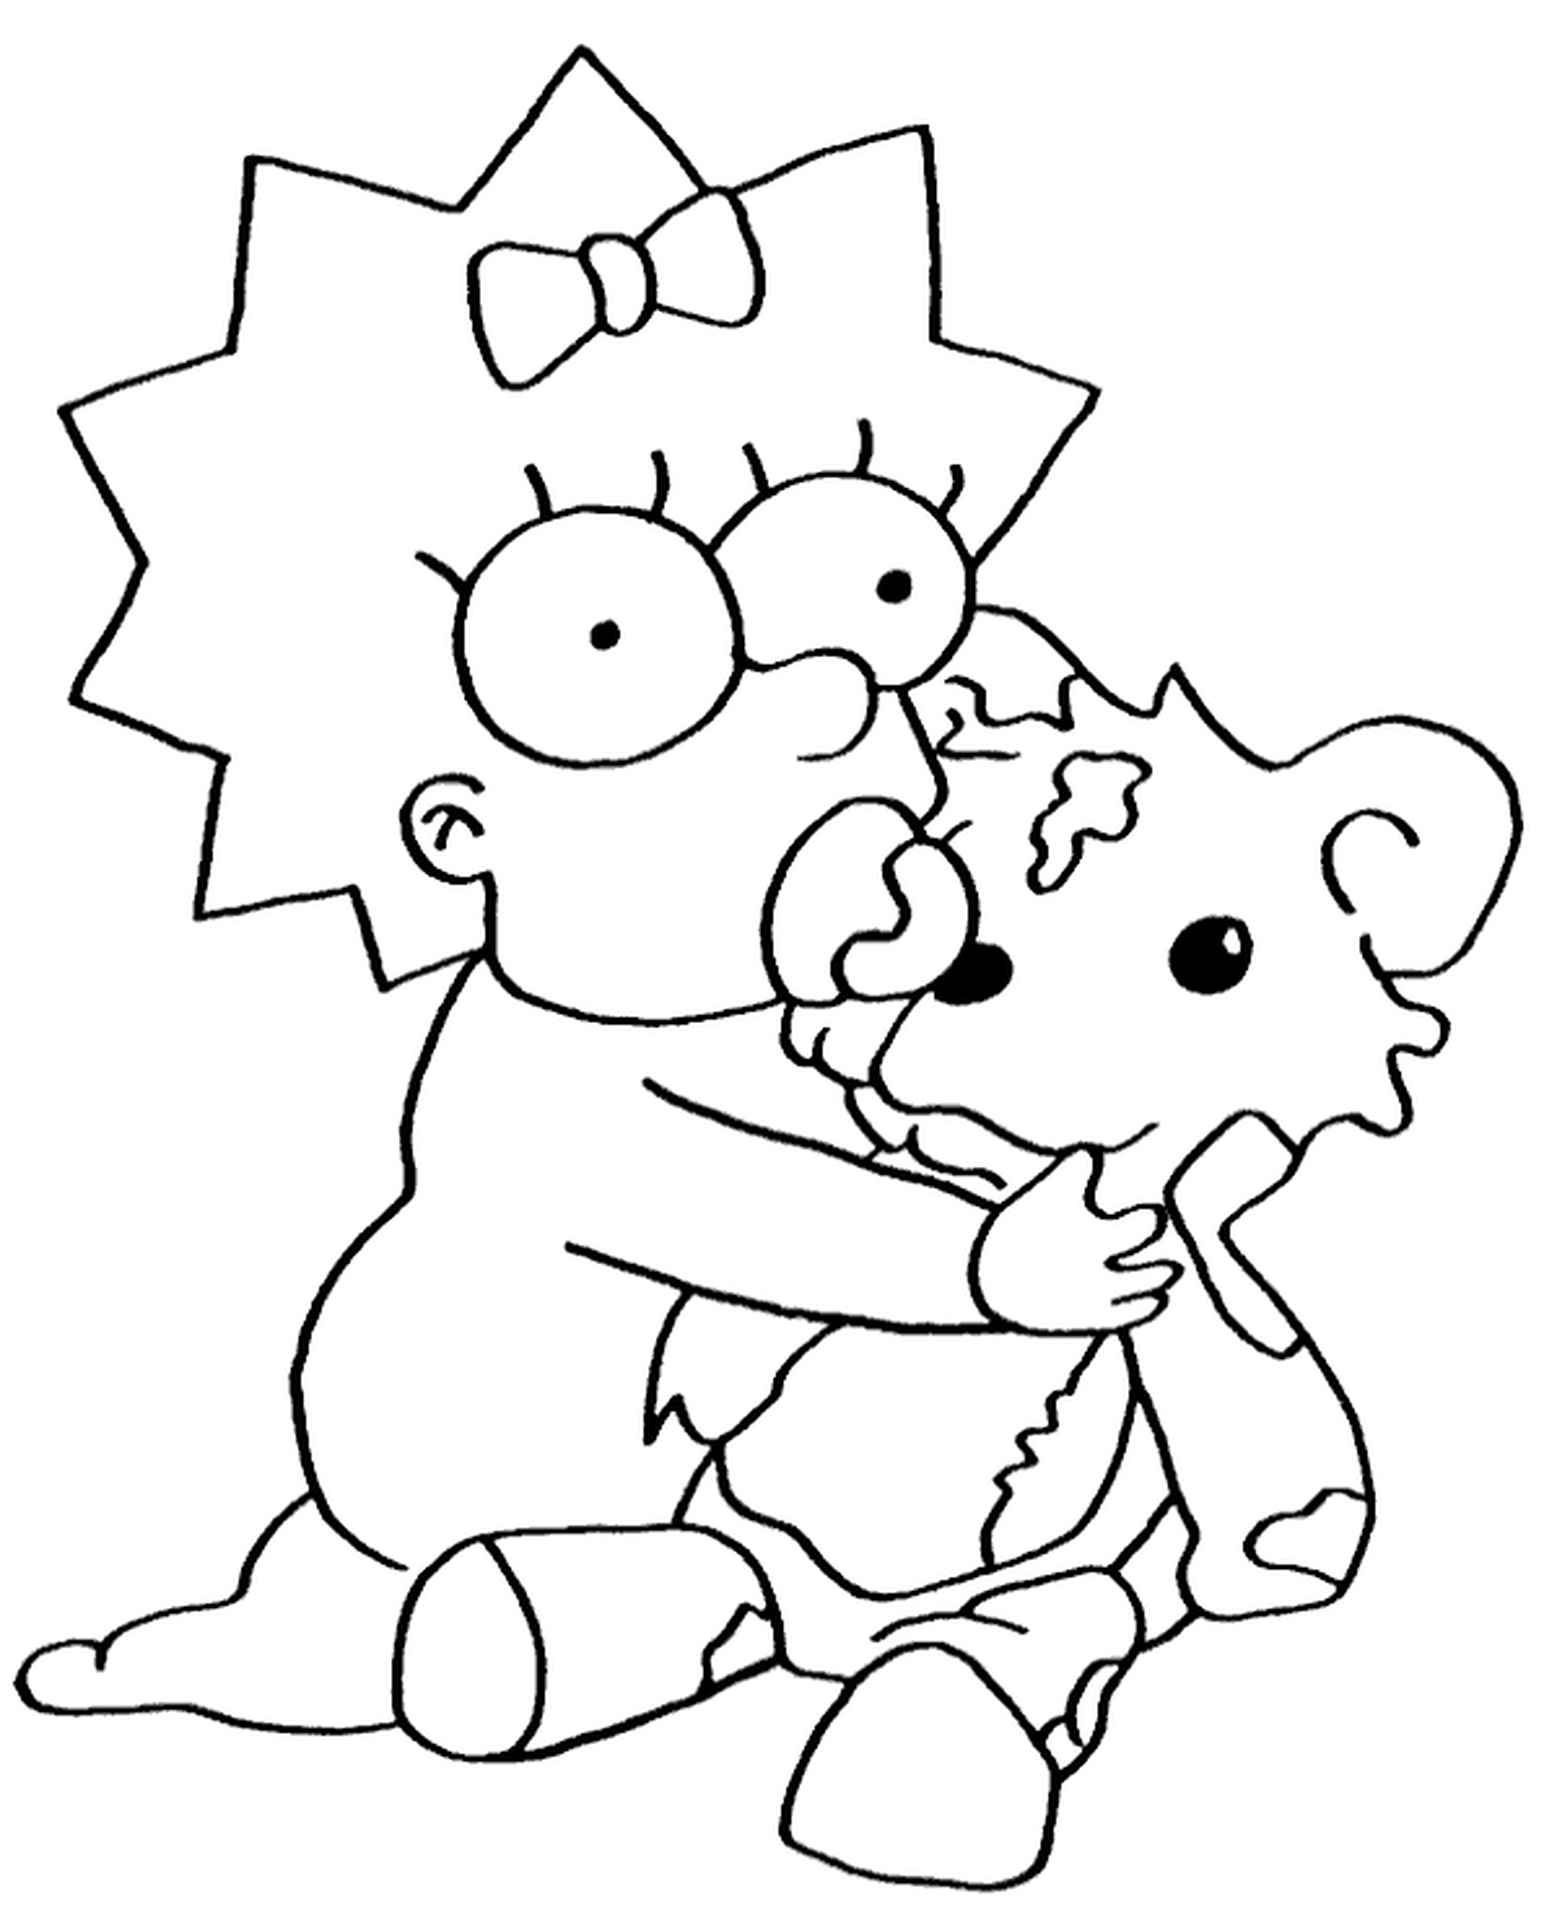 Maggie From Simpsons With Teddy Bear Coloring Page